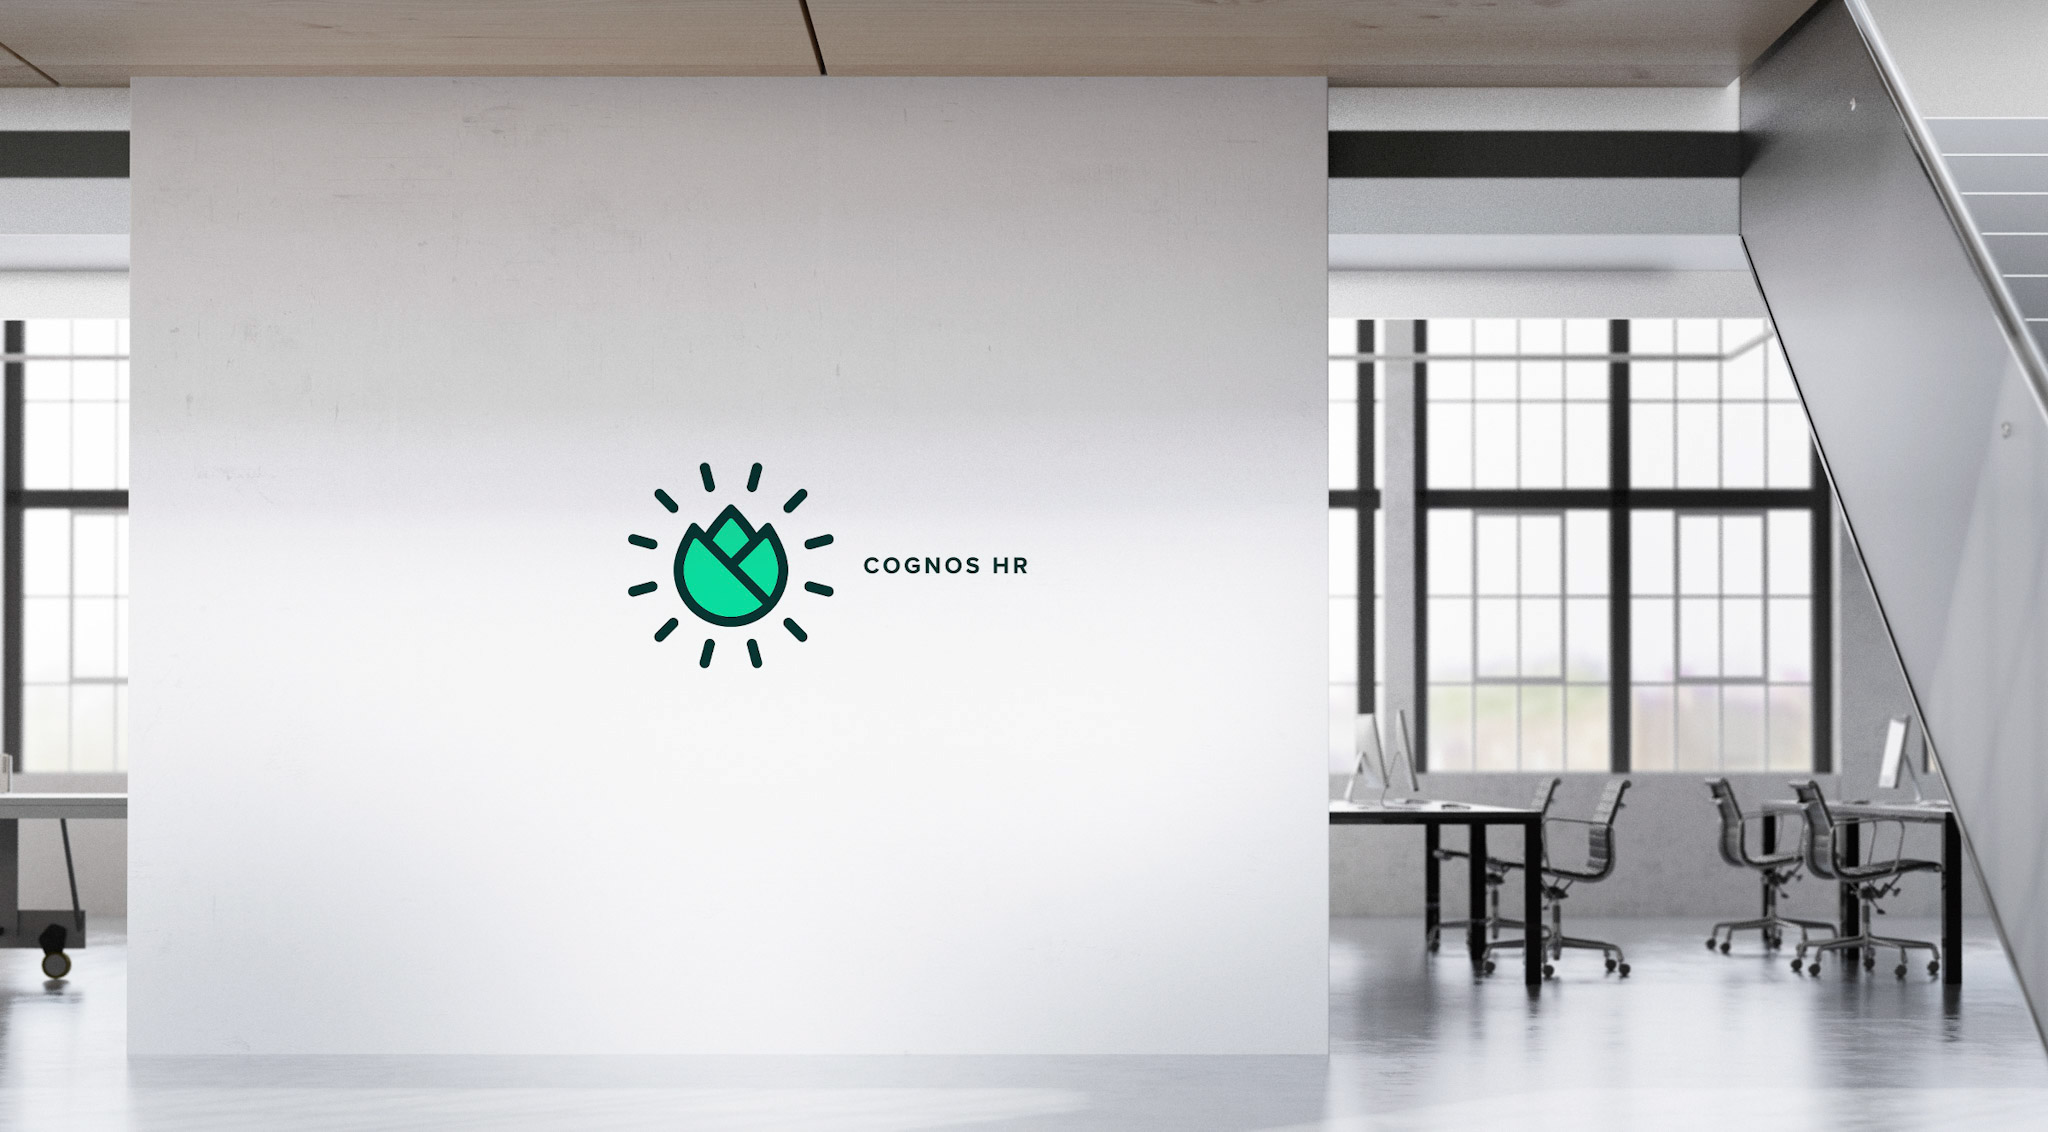 This image shows office branding for the Chicago based human resources company, Cognos HR.